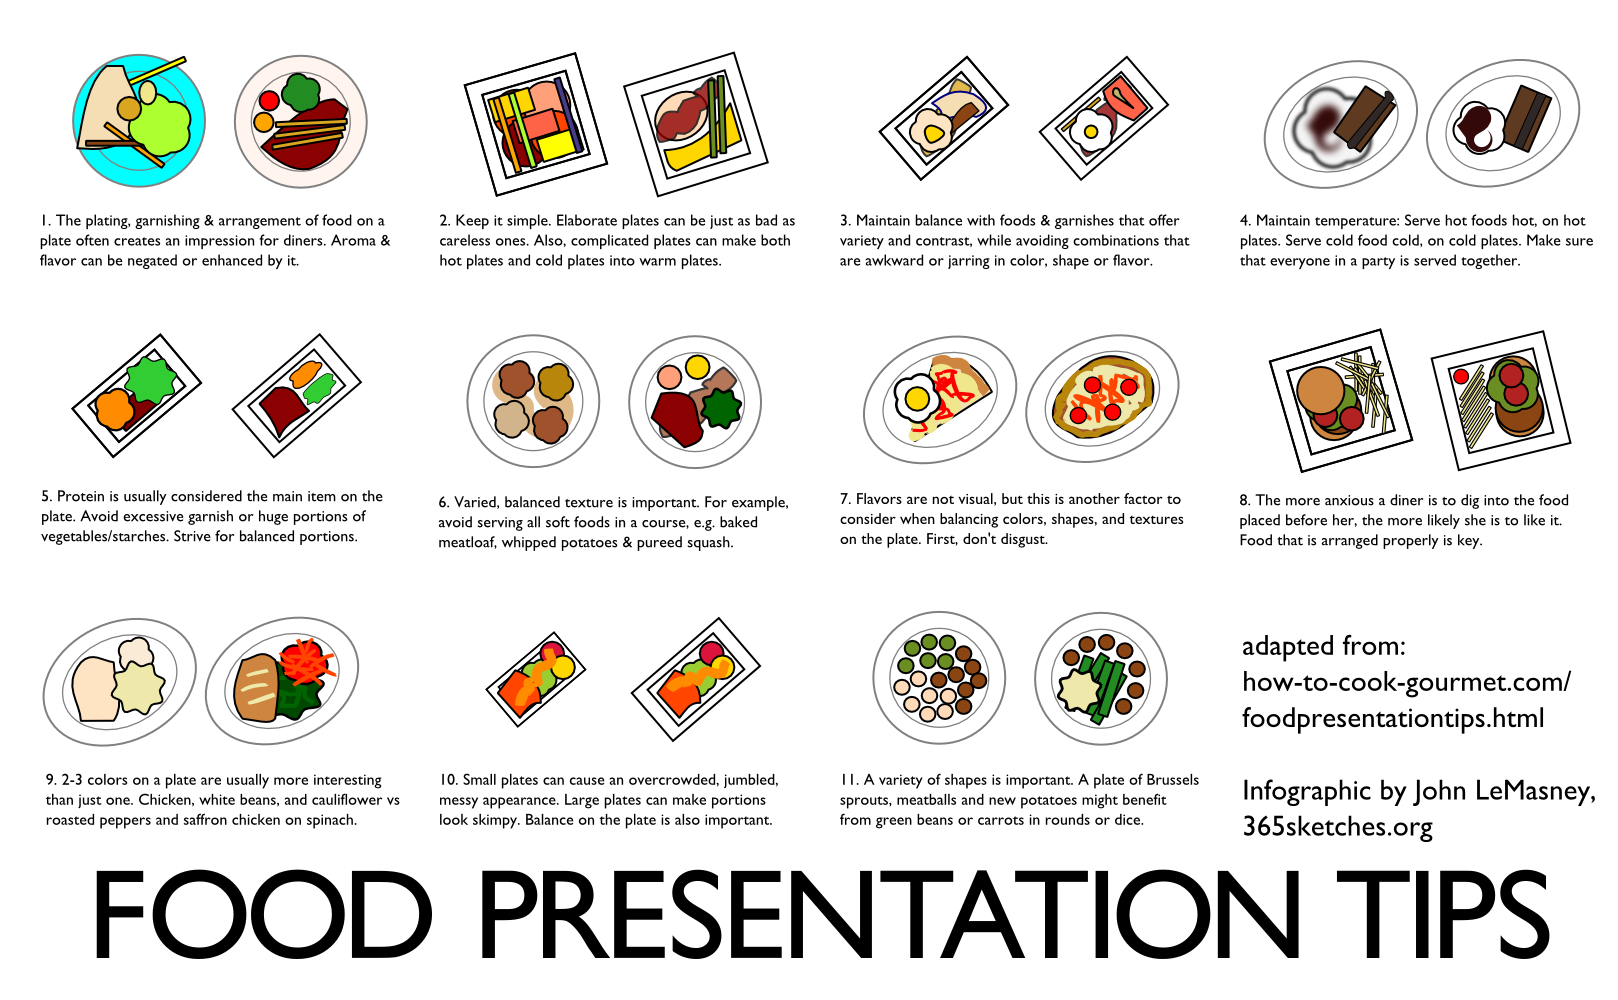 A food presentation tips poster by John LeMasney via lemasney.com food design